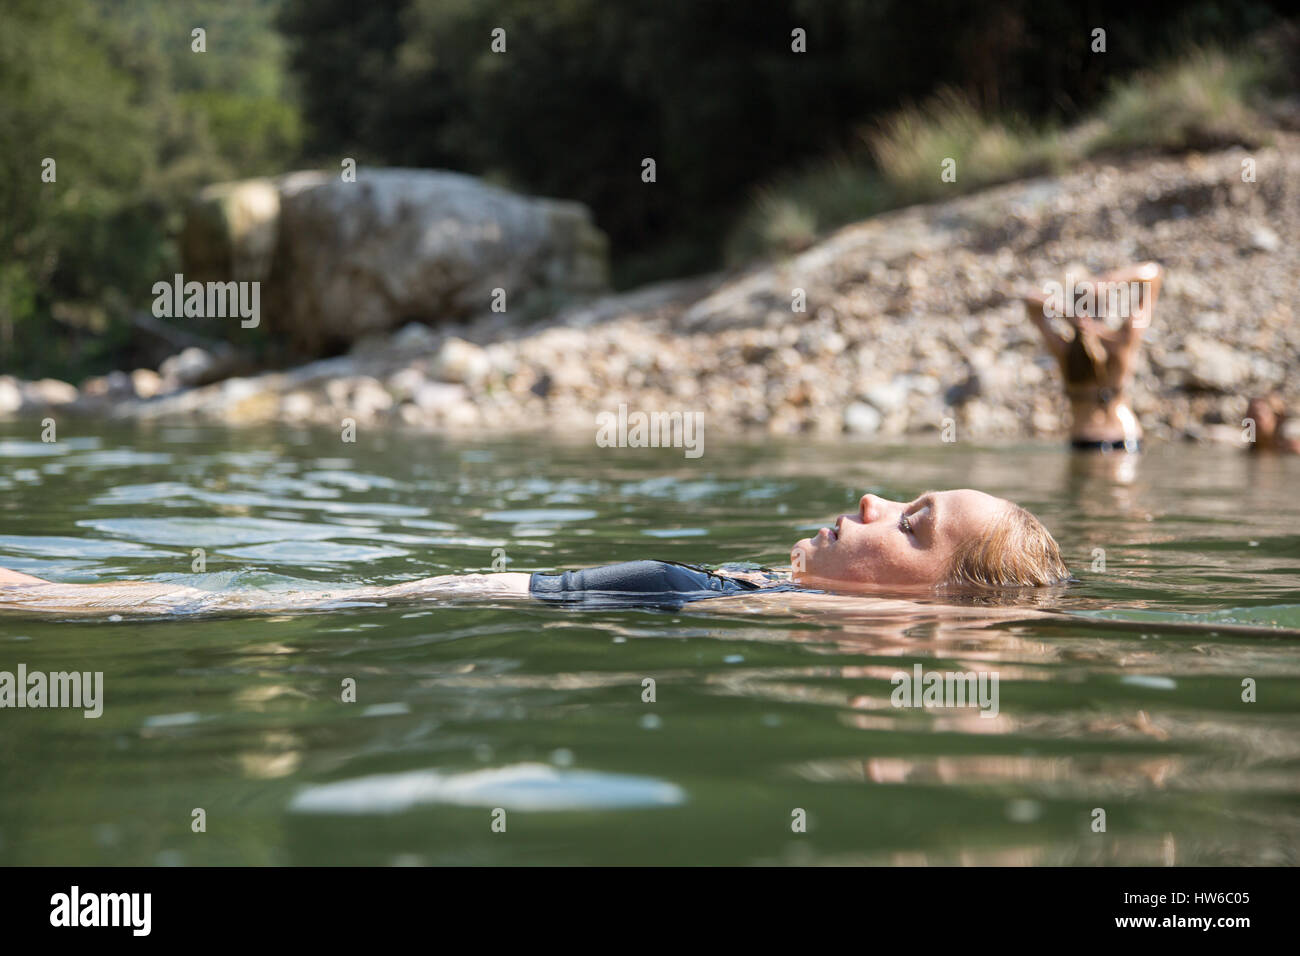 Girl floating in water - Stock Image